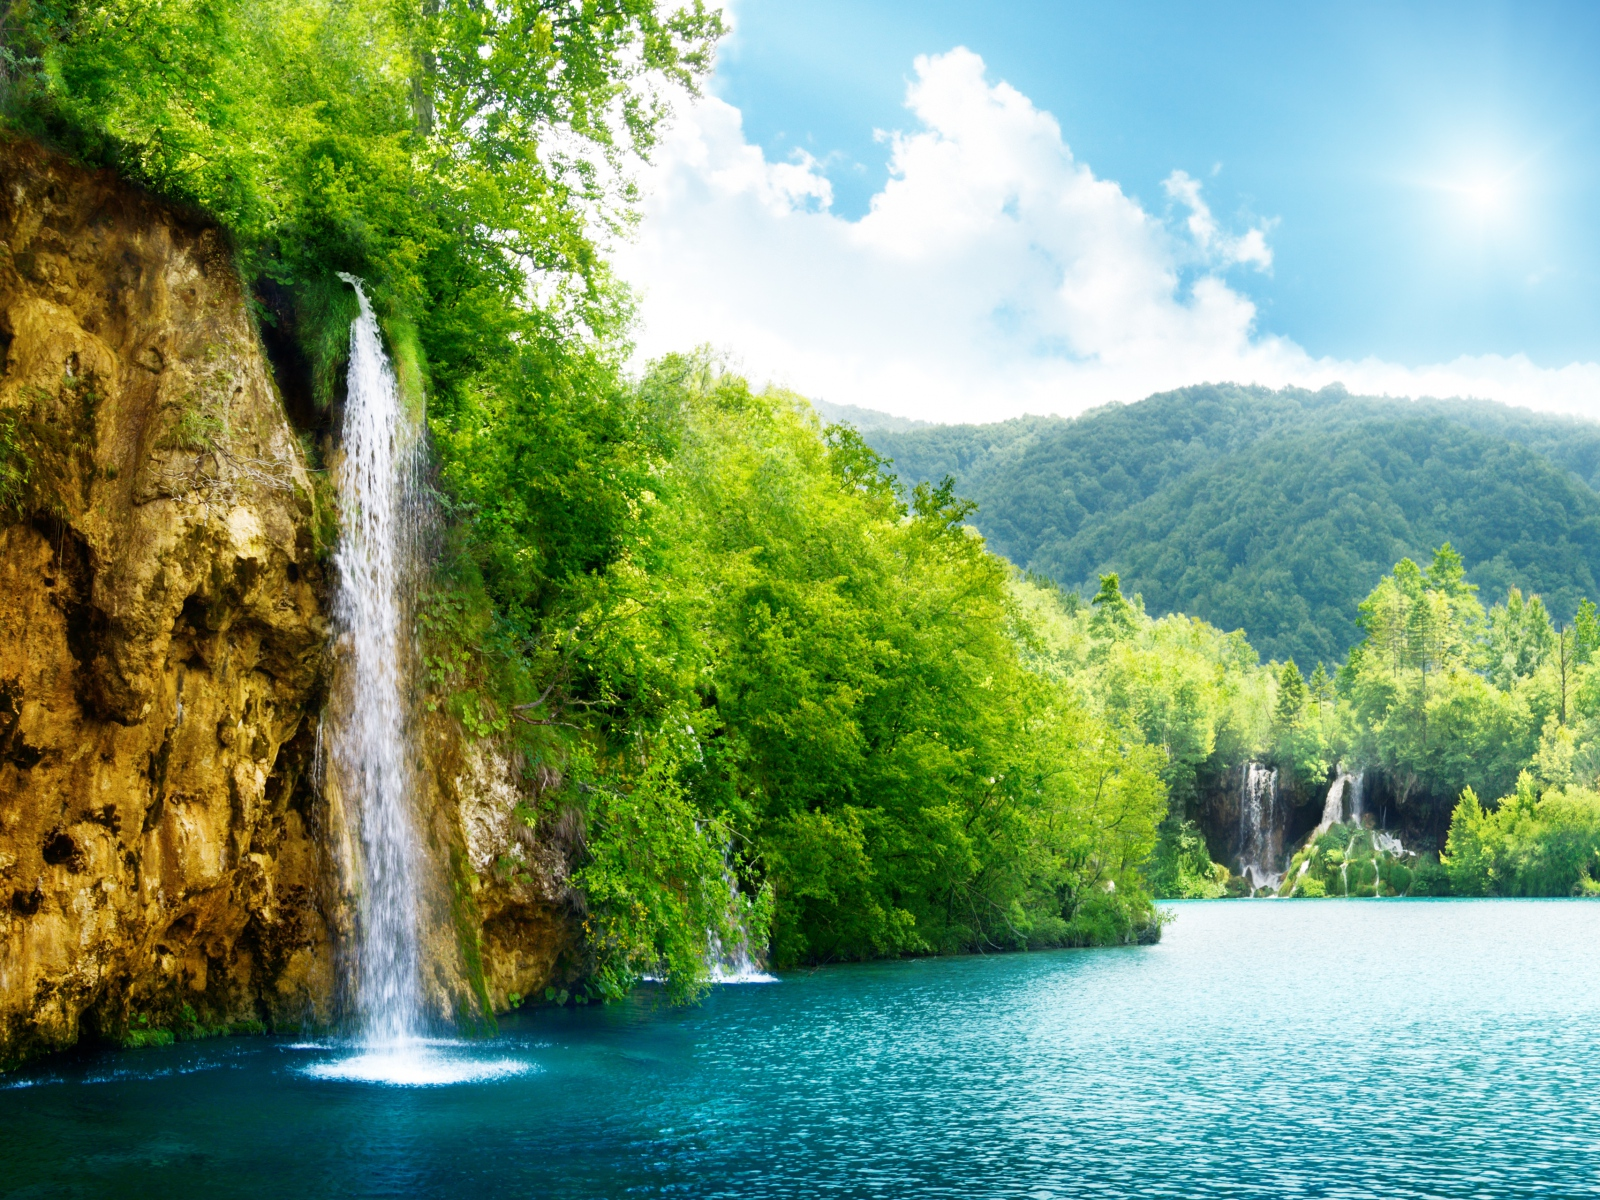 nature_waterfall_summer_lake_trees_90400_1600x1200.jpg